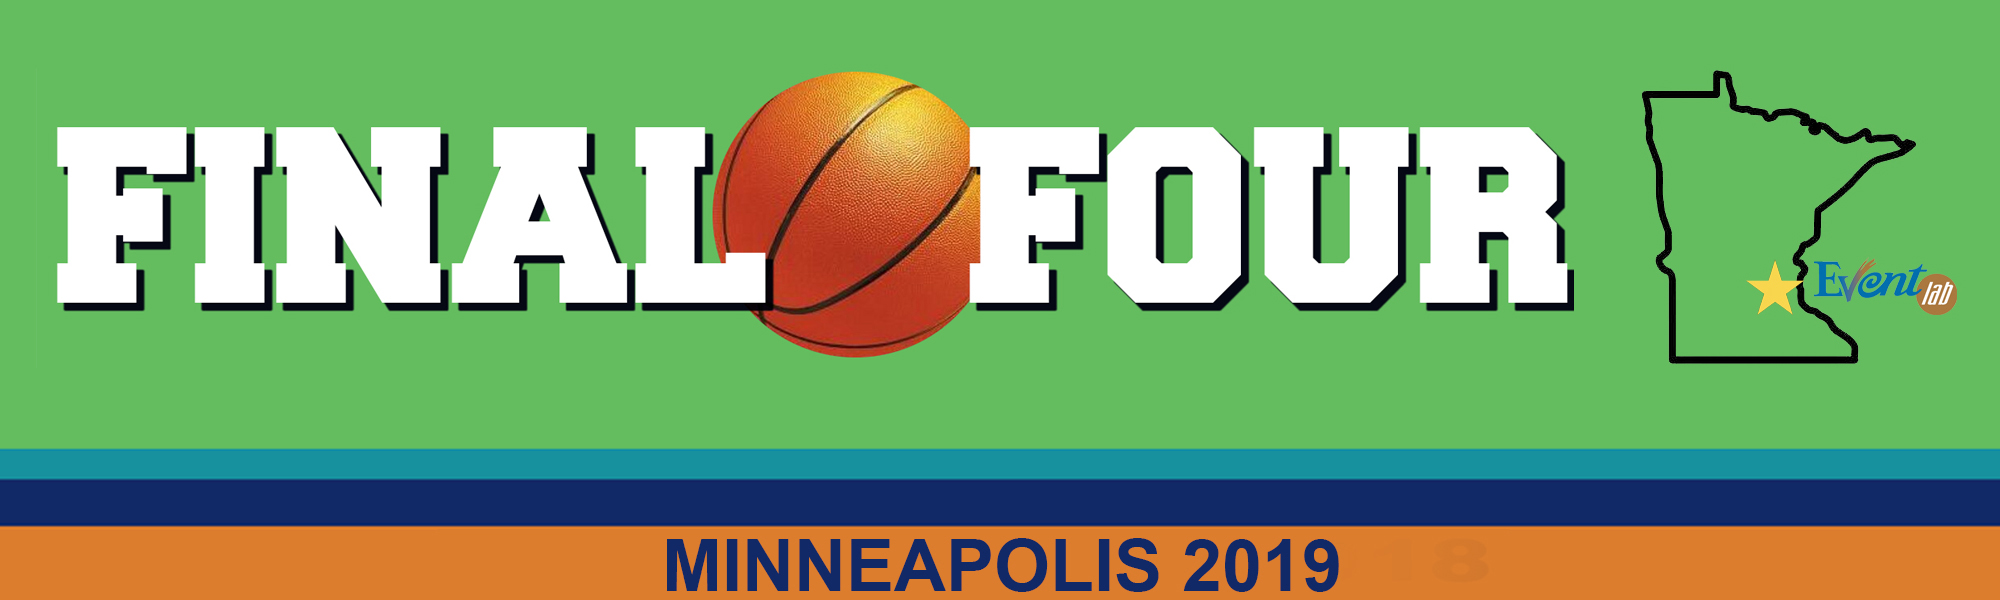 Final Four event planning